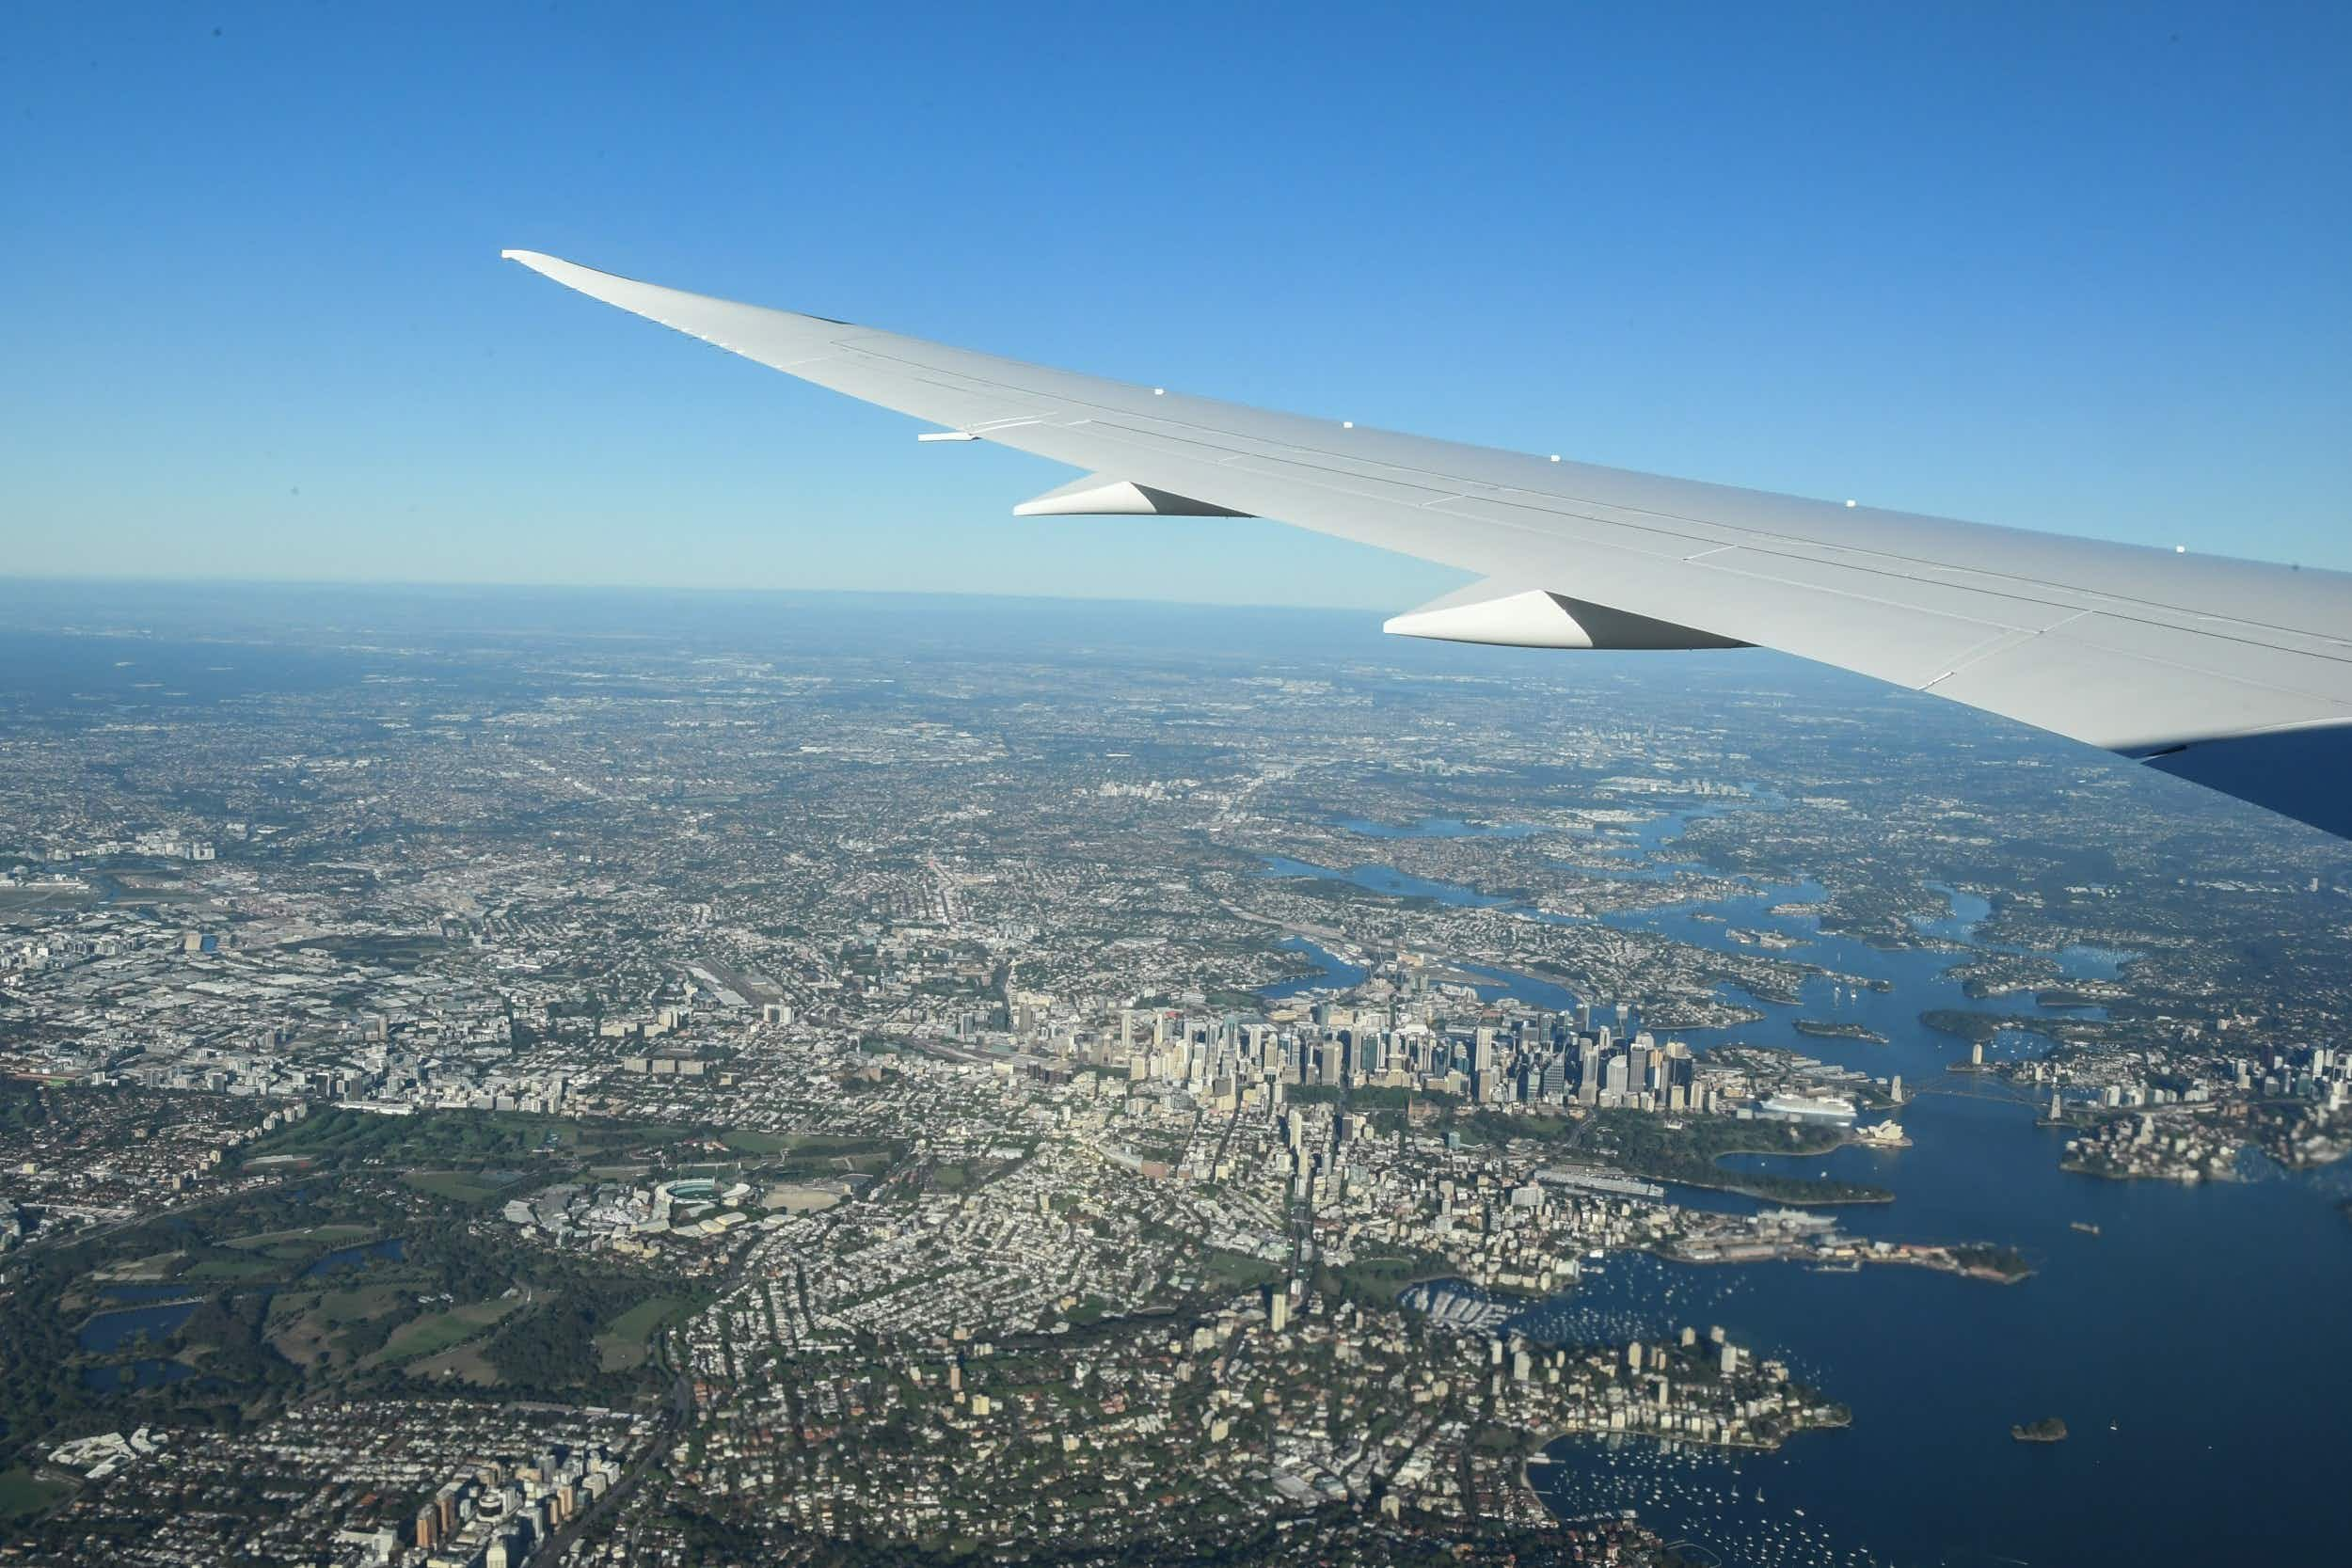 A view from the flight as it travelled from New York to Sydney © James D Morgan/Qantas